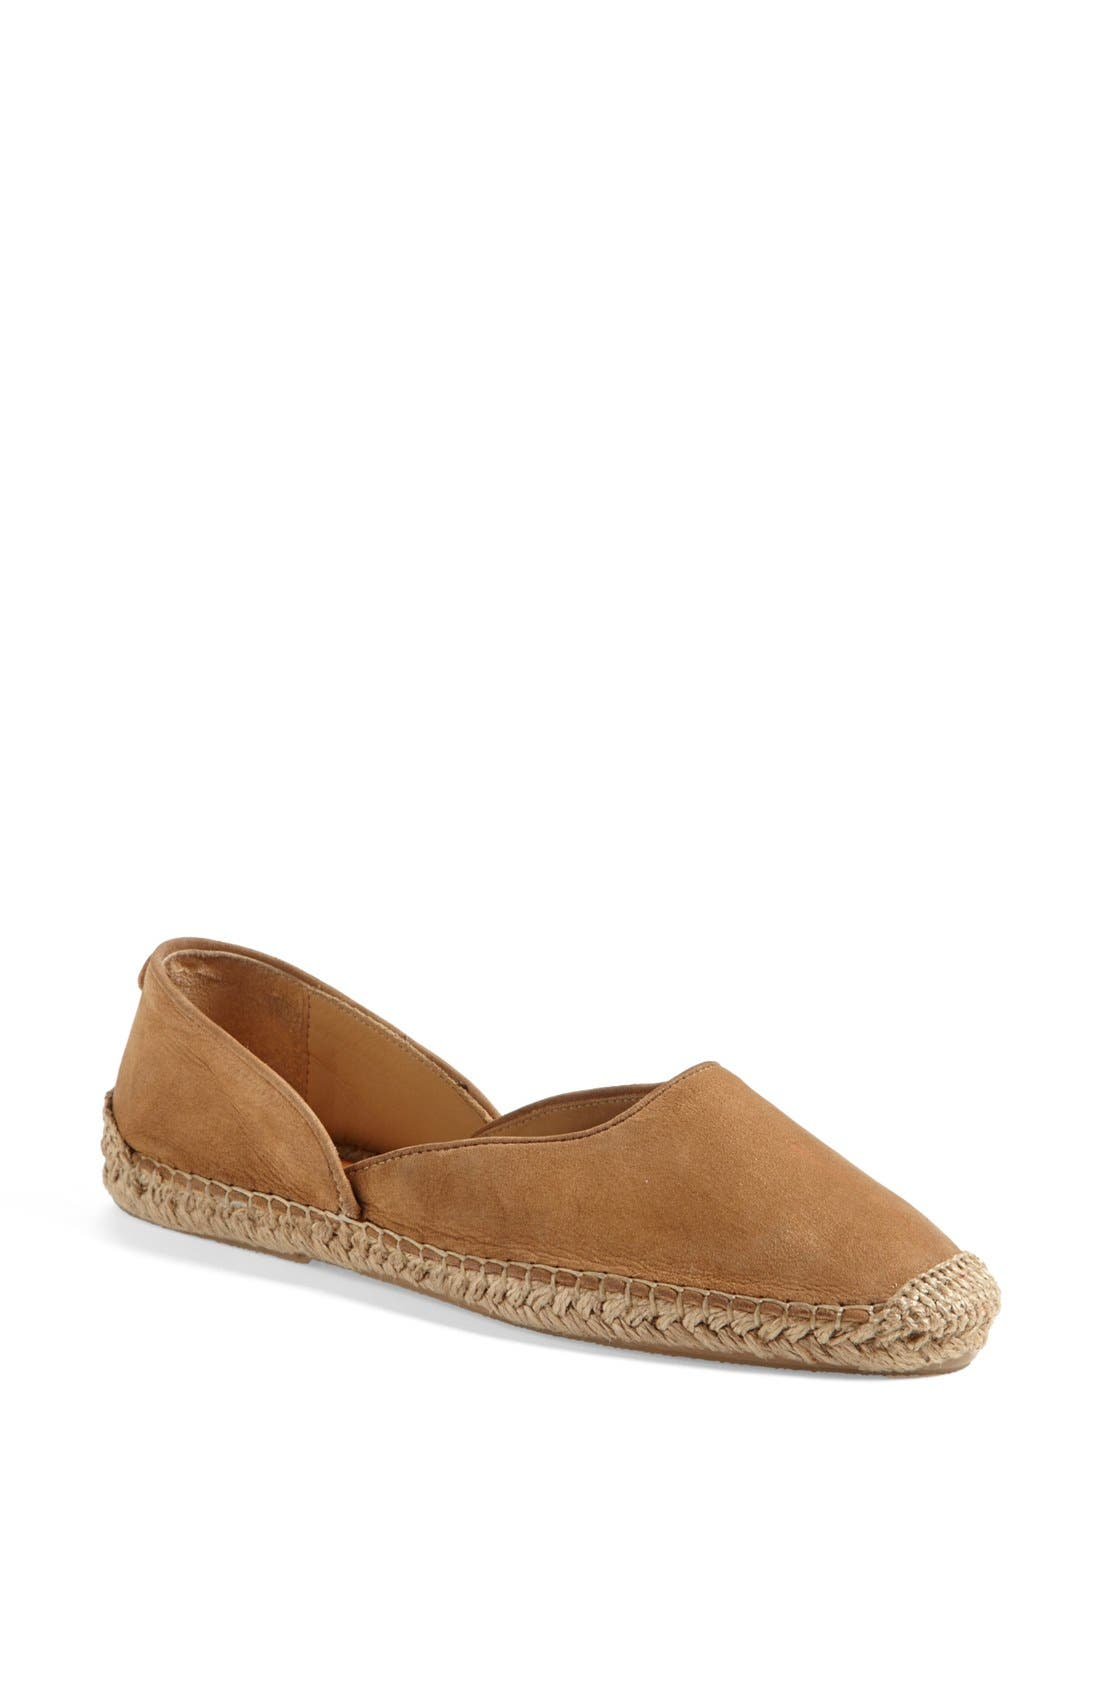 Alternate Image 1 Selected - rag & bone 'Georgie' Espadrille (Online Only)